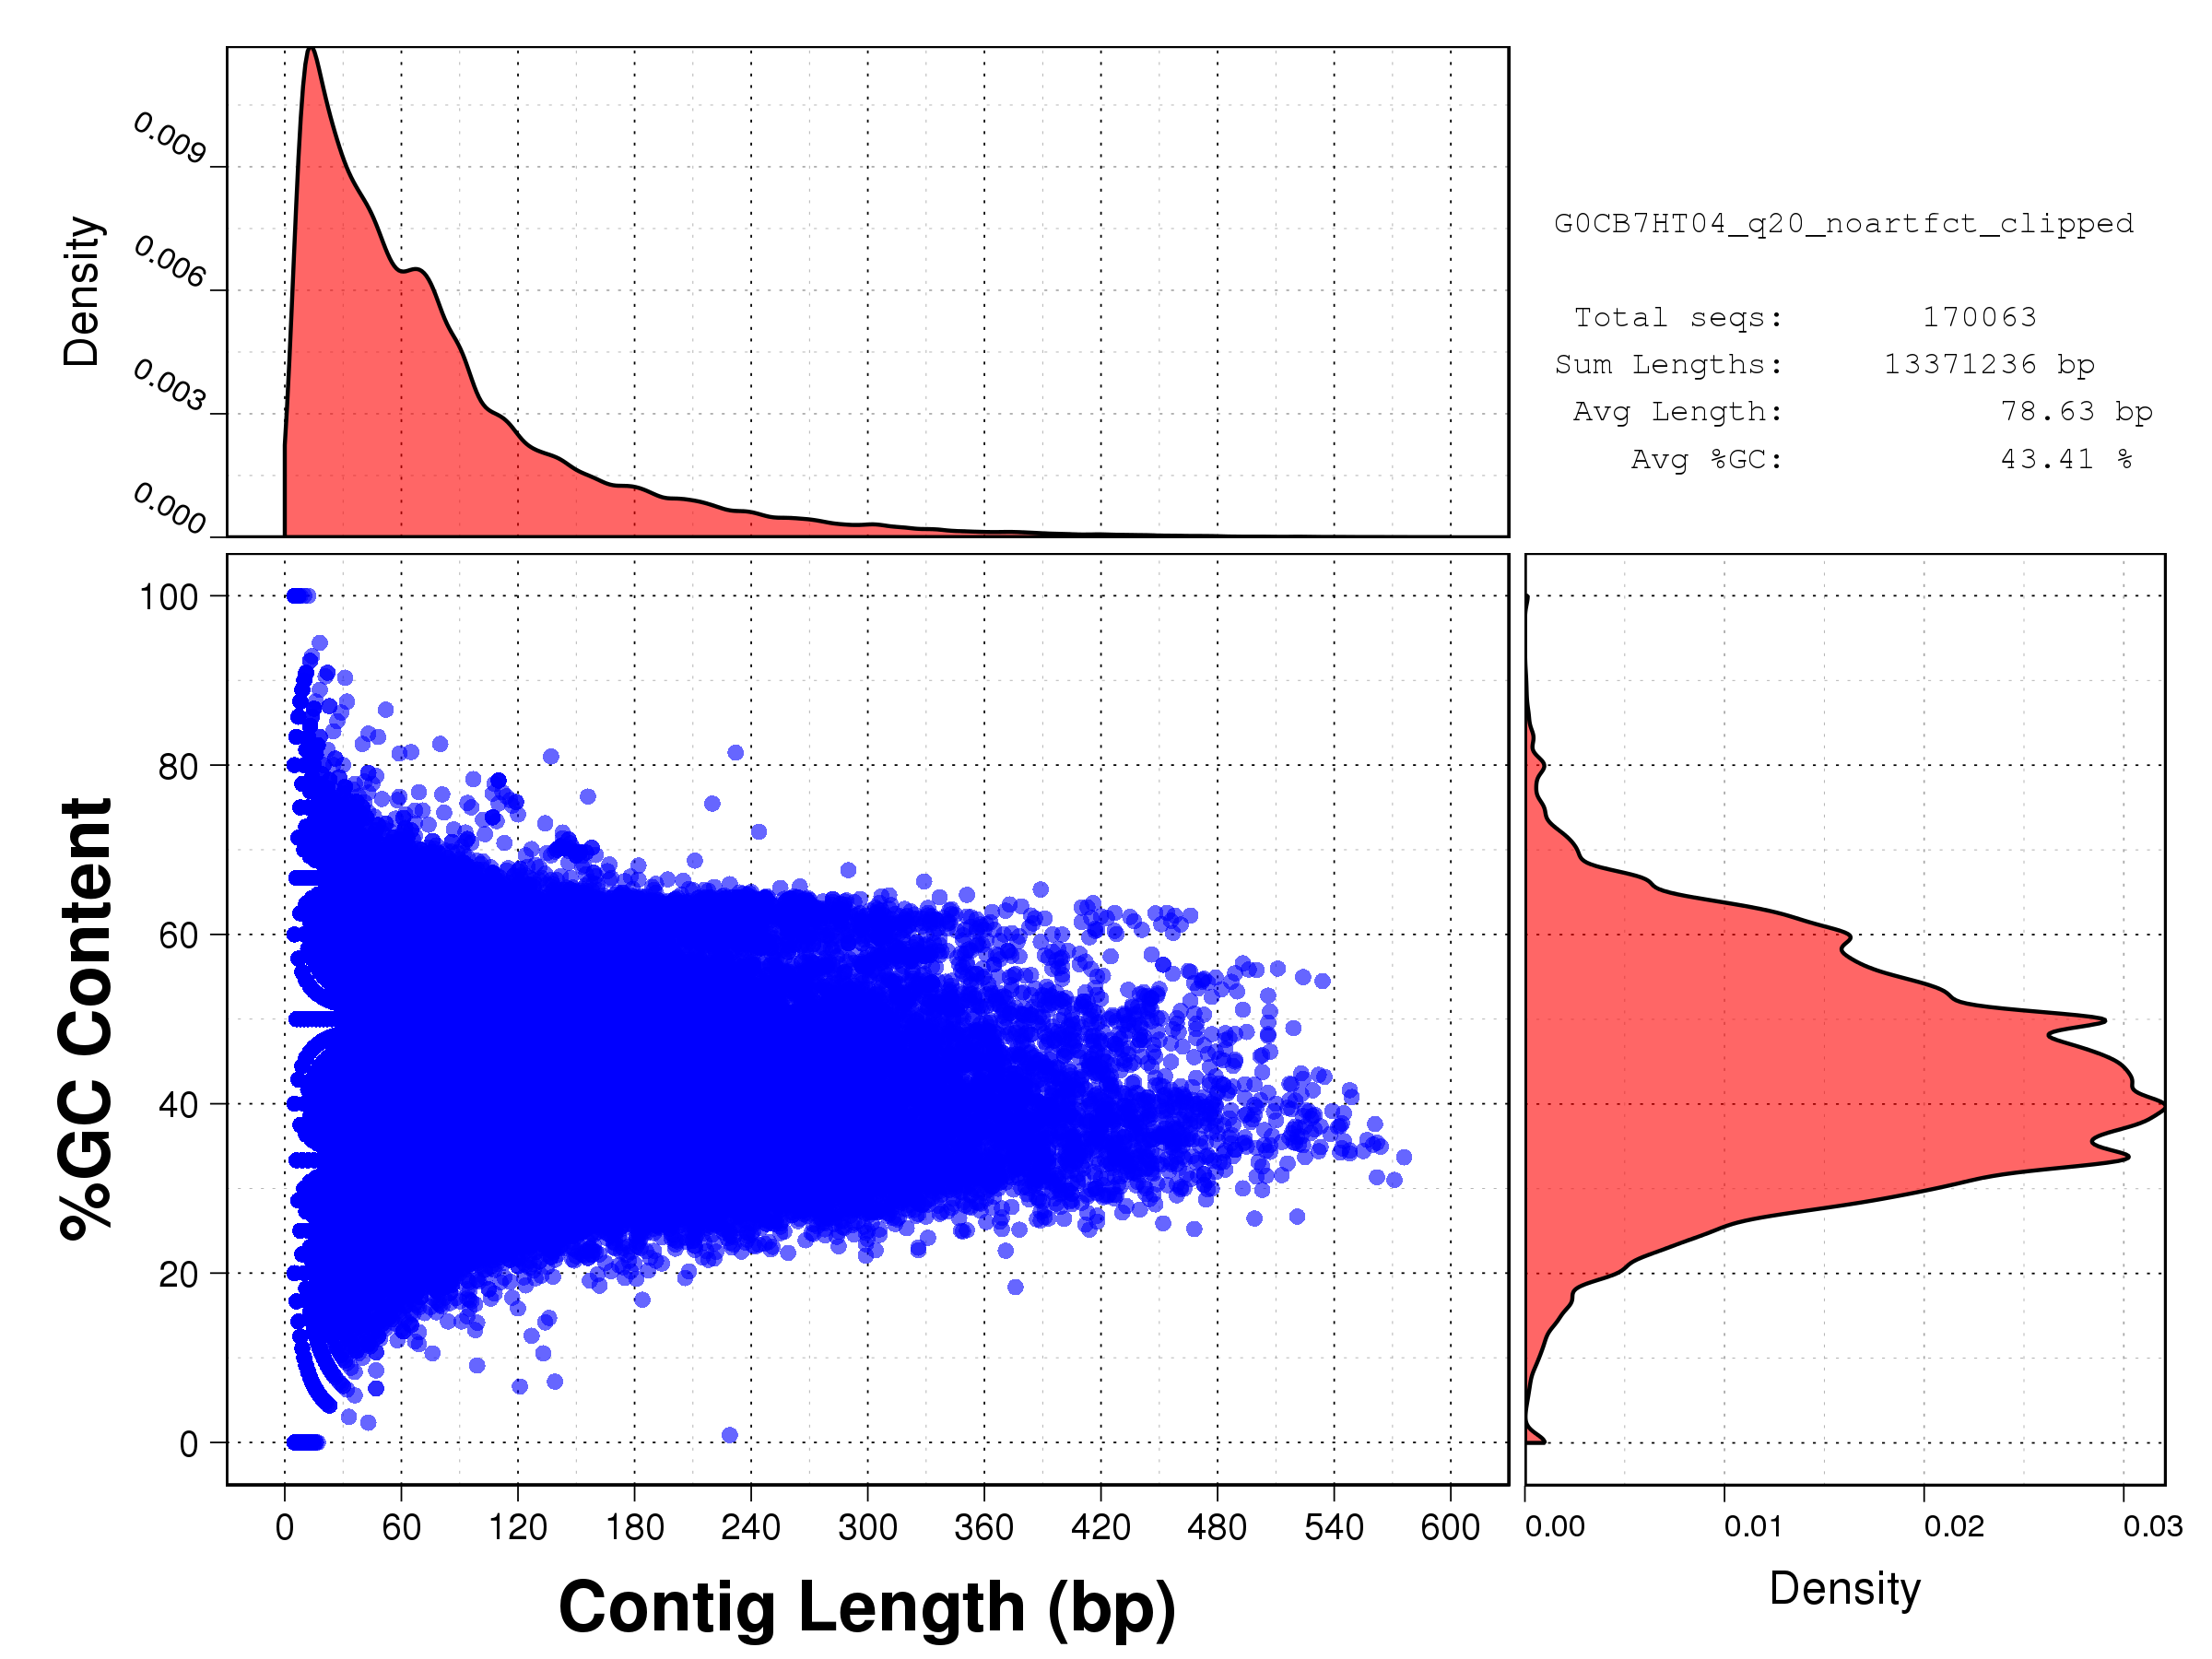 Length vs GC content plot for all starfish reads after Phred Q20 + artifact + adapter cleaning: G0CB7HT04.